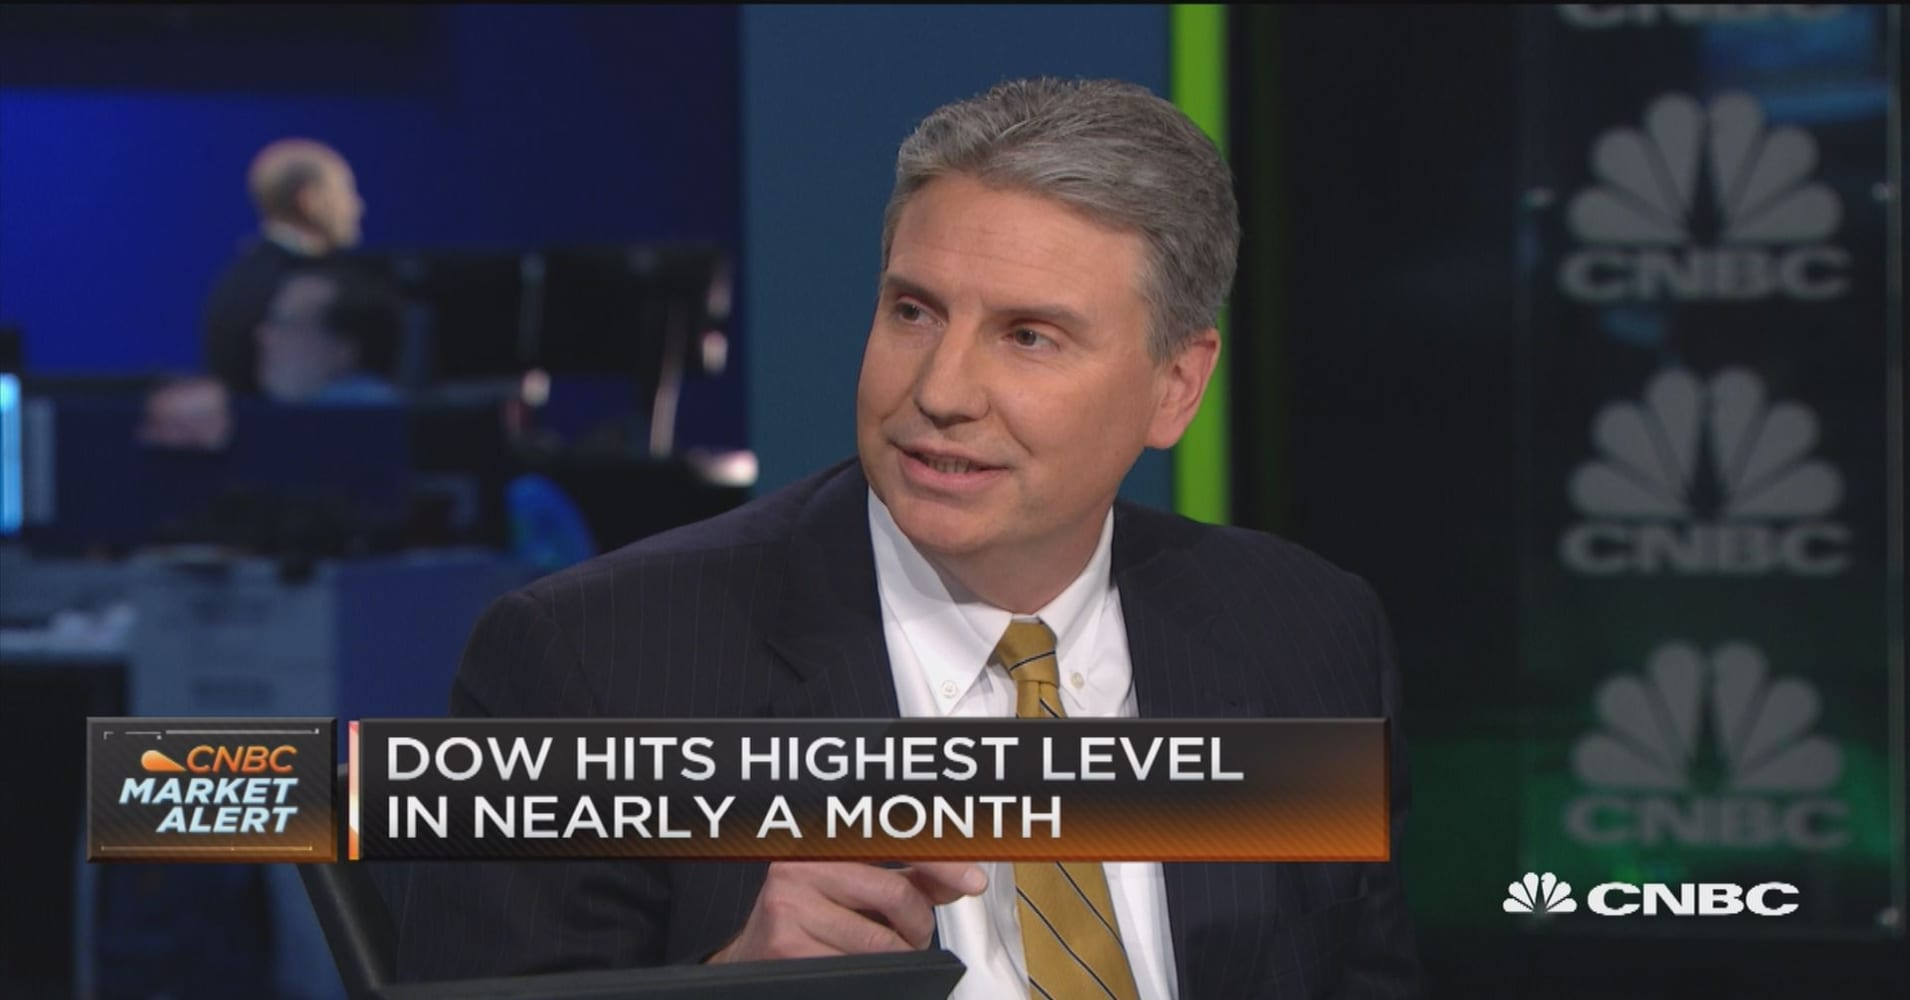 We're at beginning stages of new bull market: Investment expert